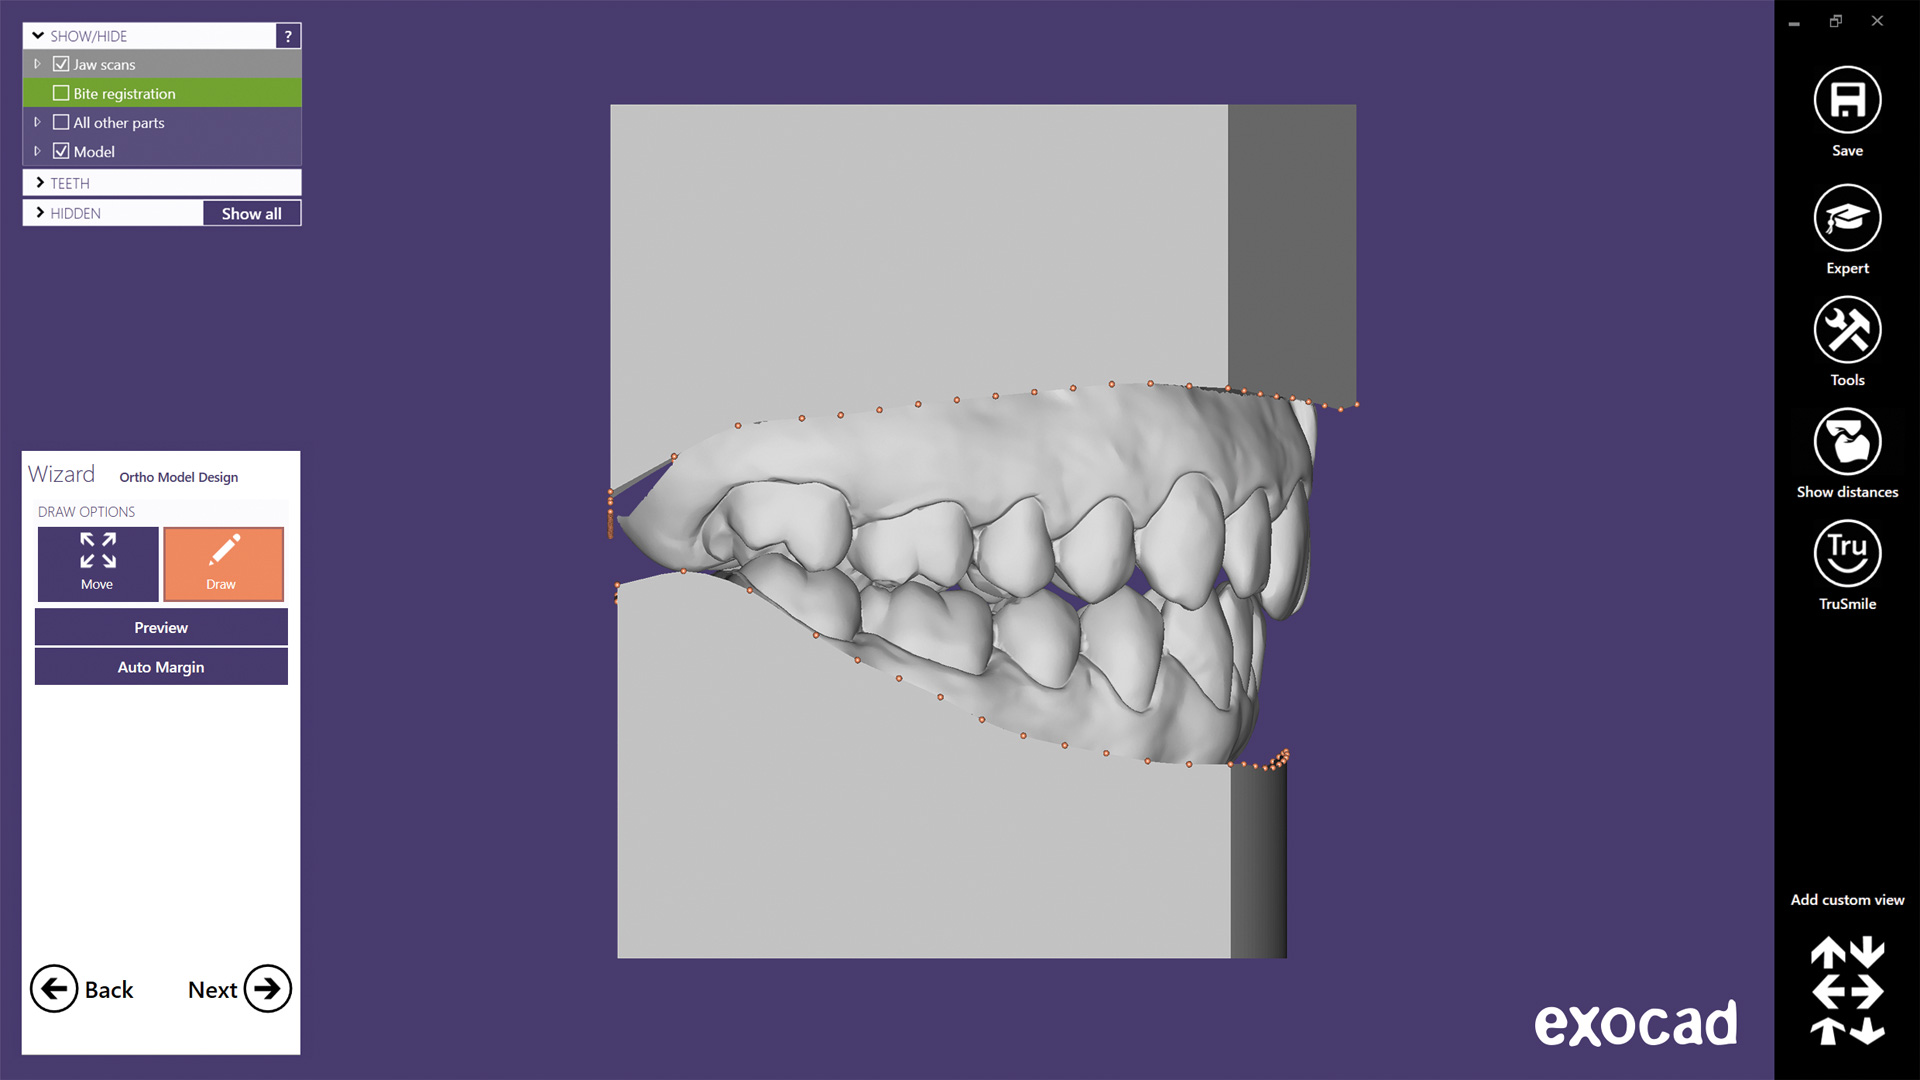 Preview: exocad Ortho Archiver is our solution to create orthodontic archive models.